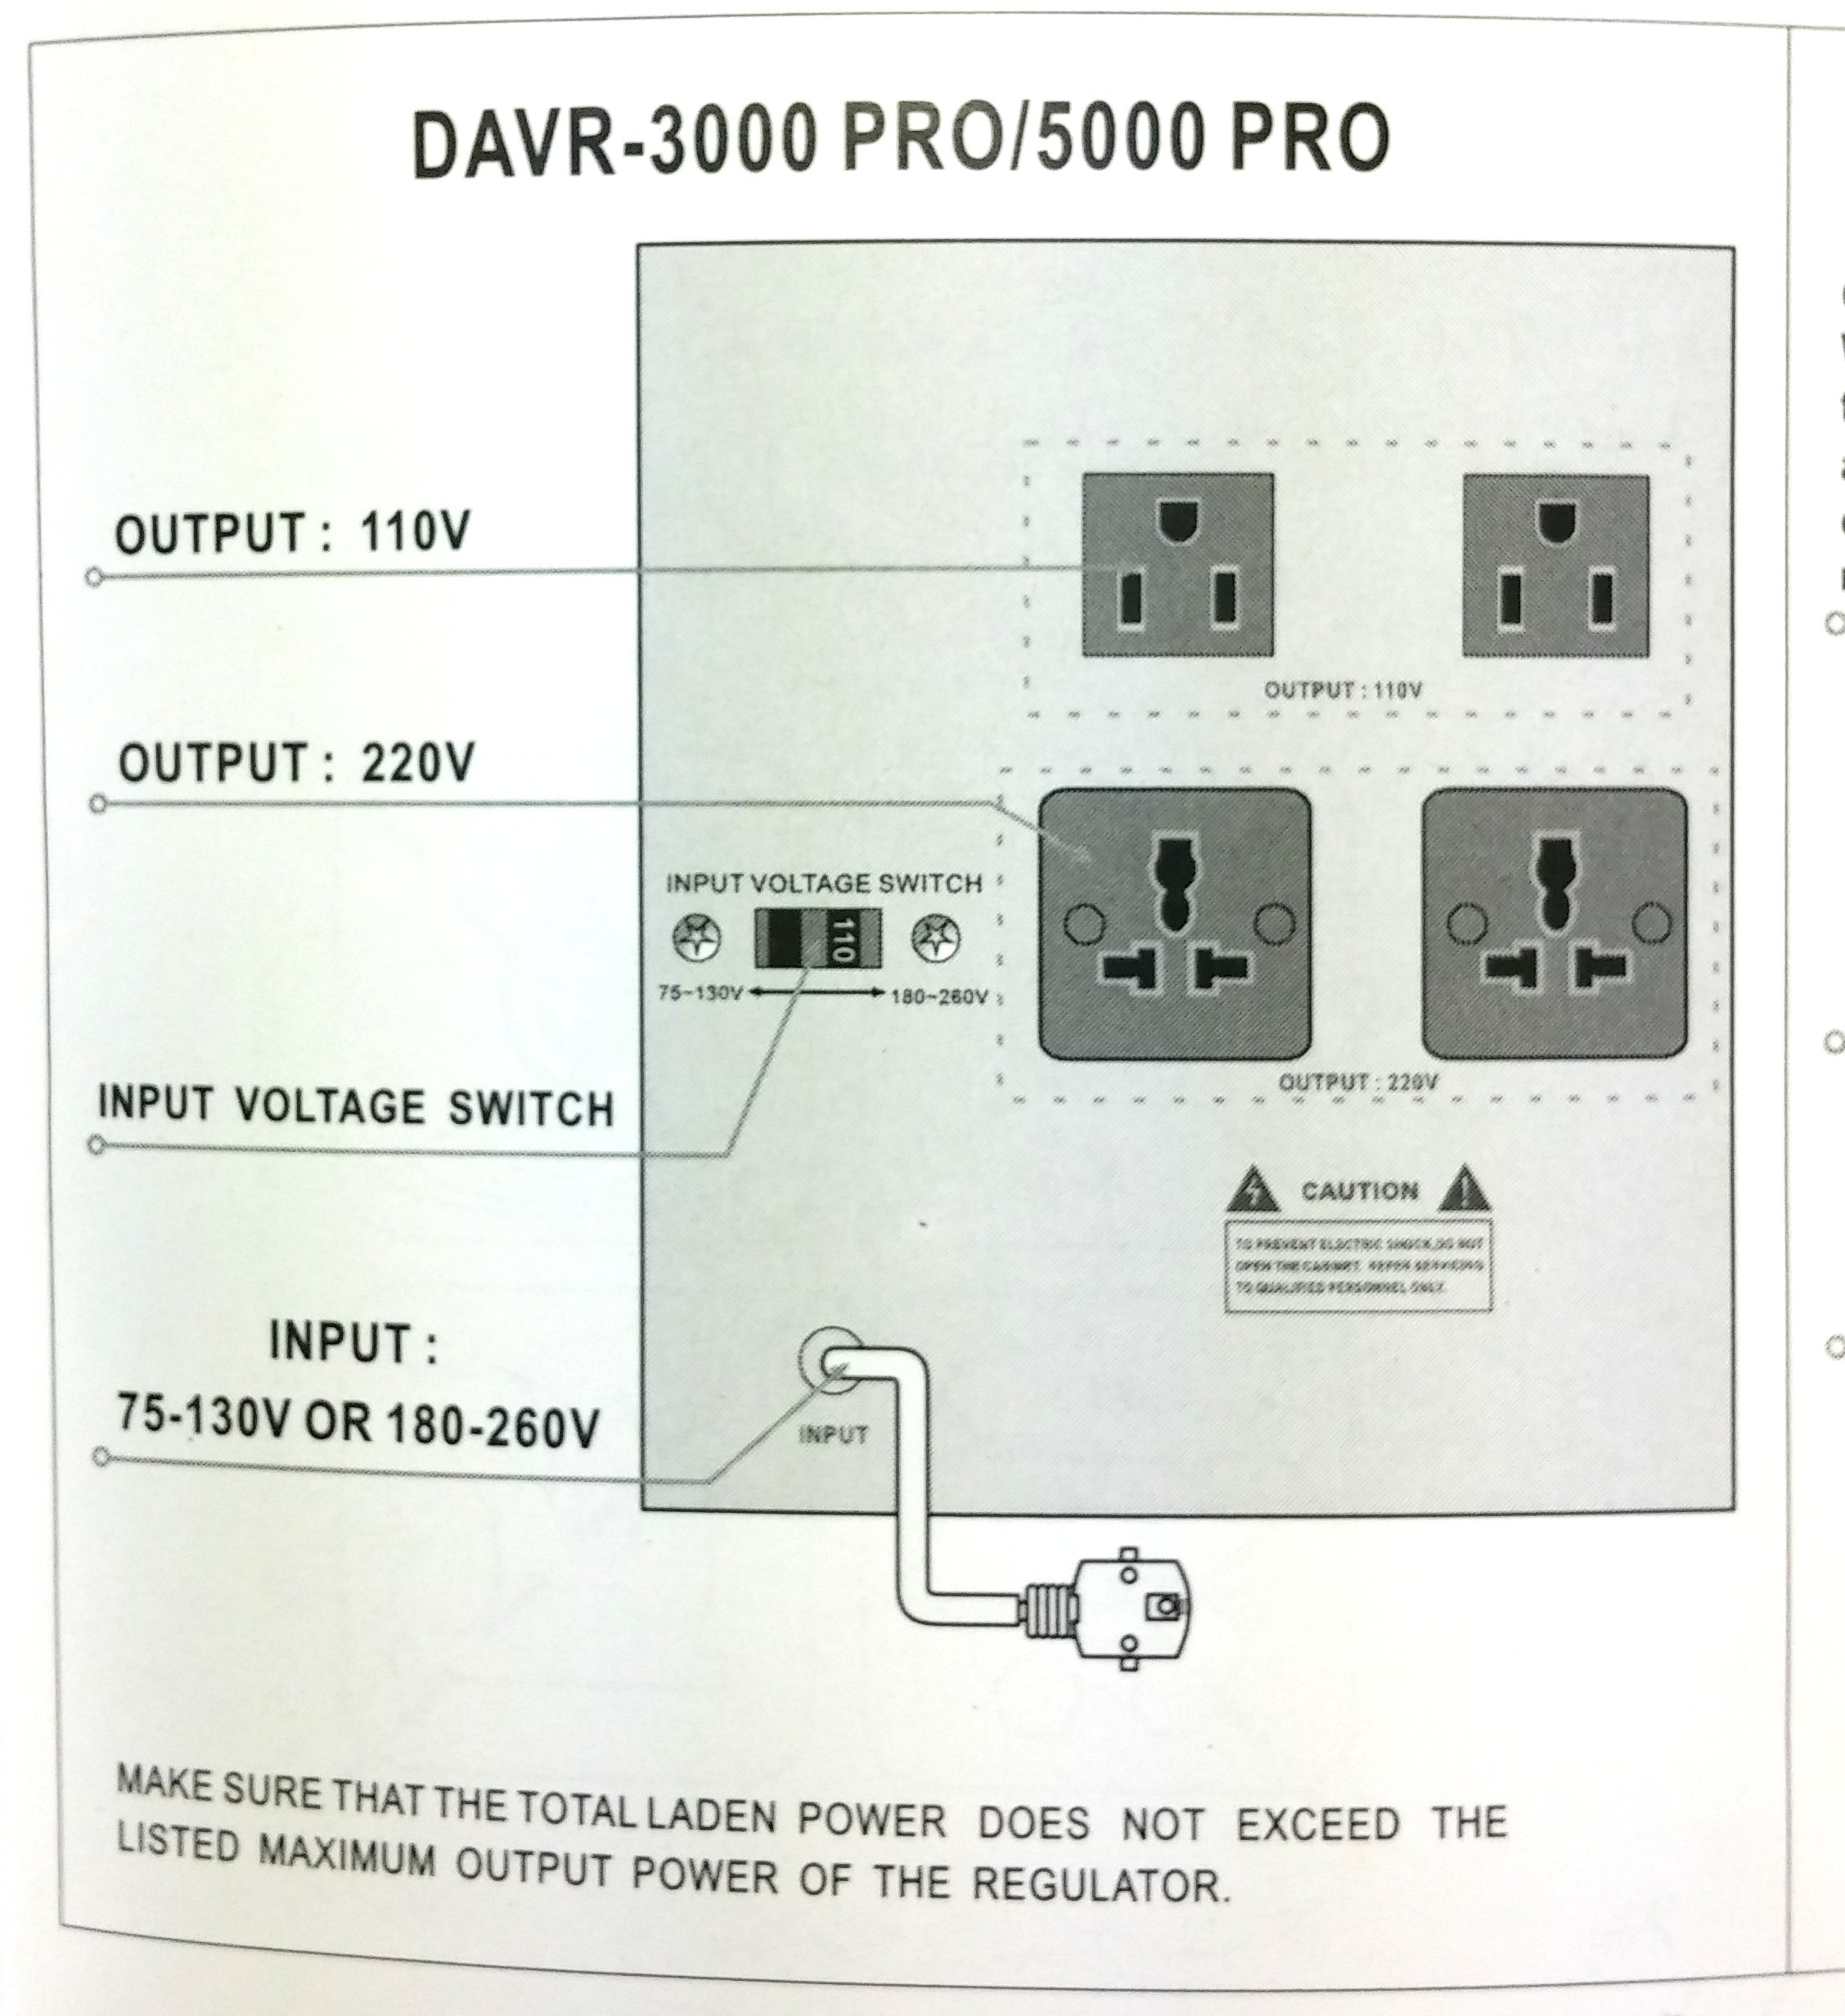 Norstar DAVR-3000 3000 Watt 110/120 to 220/240 or 220/240 to 110/120 Step UP and Down Voltage Transformer and Automatic Voltage Regulator Stabilizer by Norstar (Image #2)